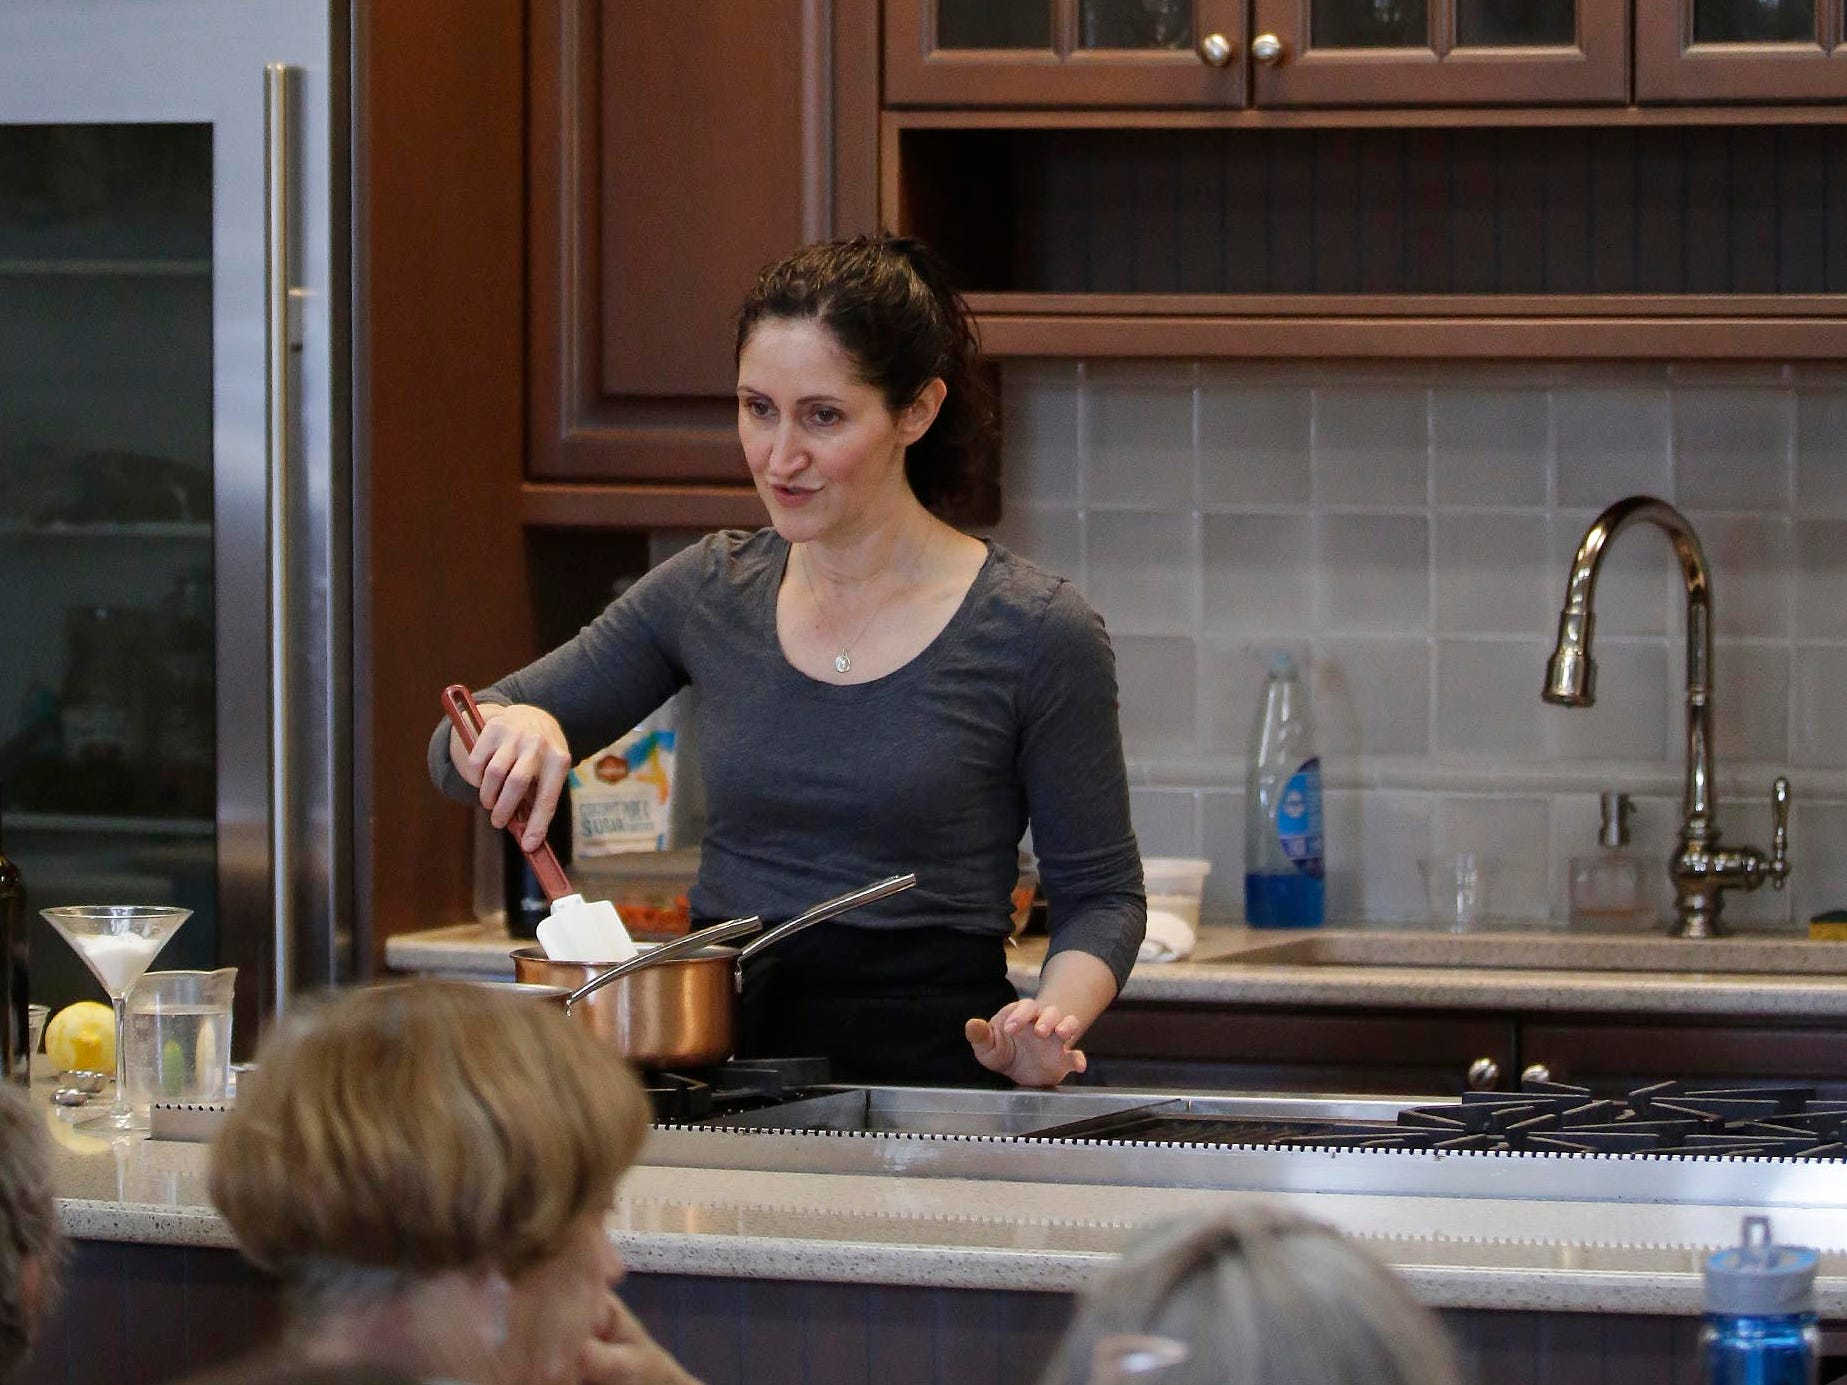 Beth Lipton, Recipe Developer and Writer, explains how to prepare a week's worth of food at one time during a session in the Demonstration Kitchen during Kohler Well-Being, Saturday, May 4, 2019, in Kohler, Wis.